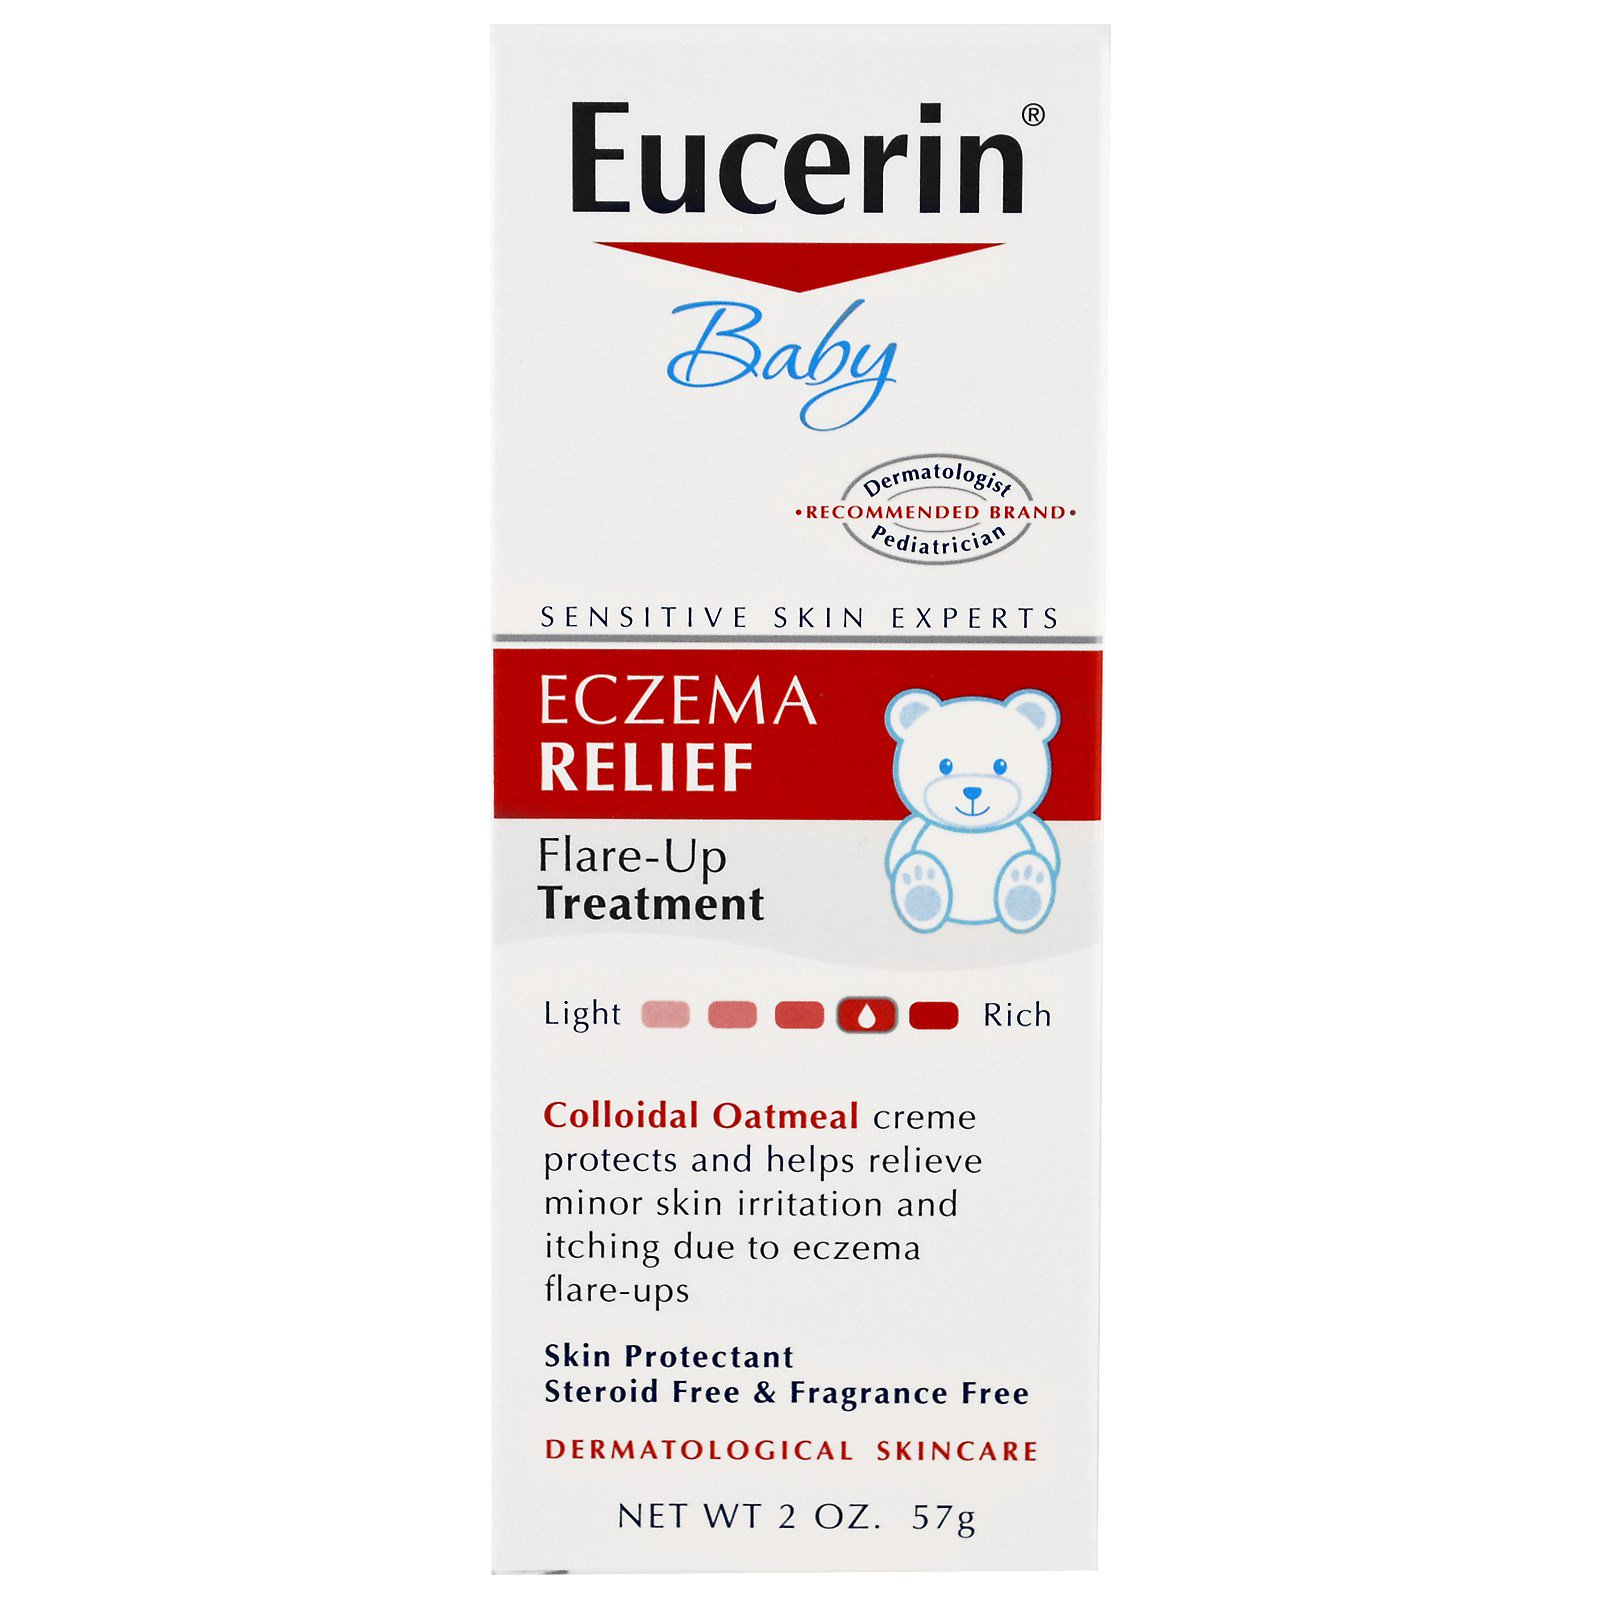 Eucerin Baby Eczema Relief Flare Up Treatment